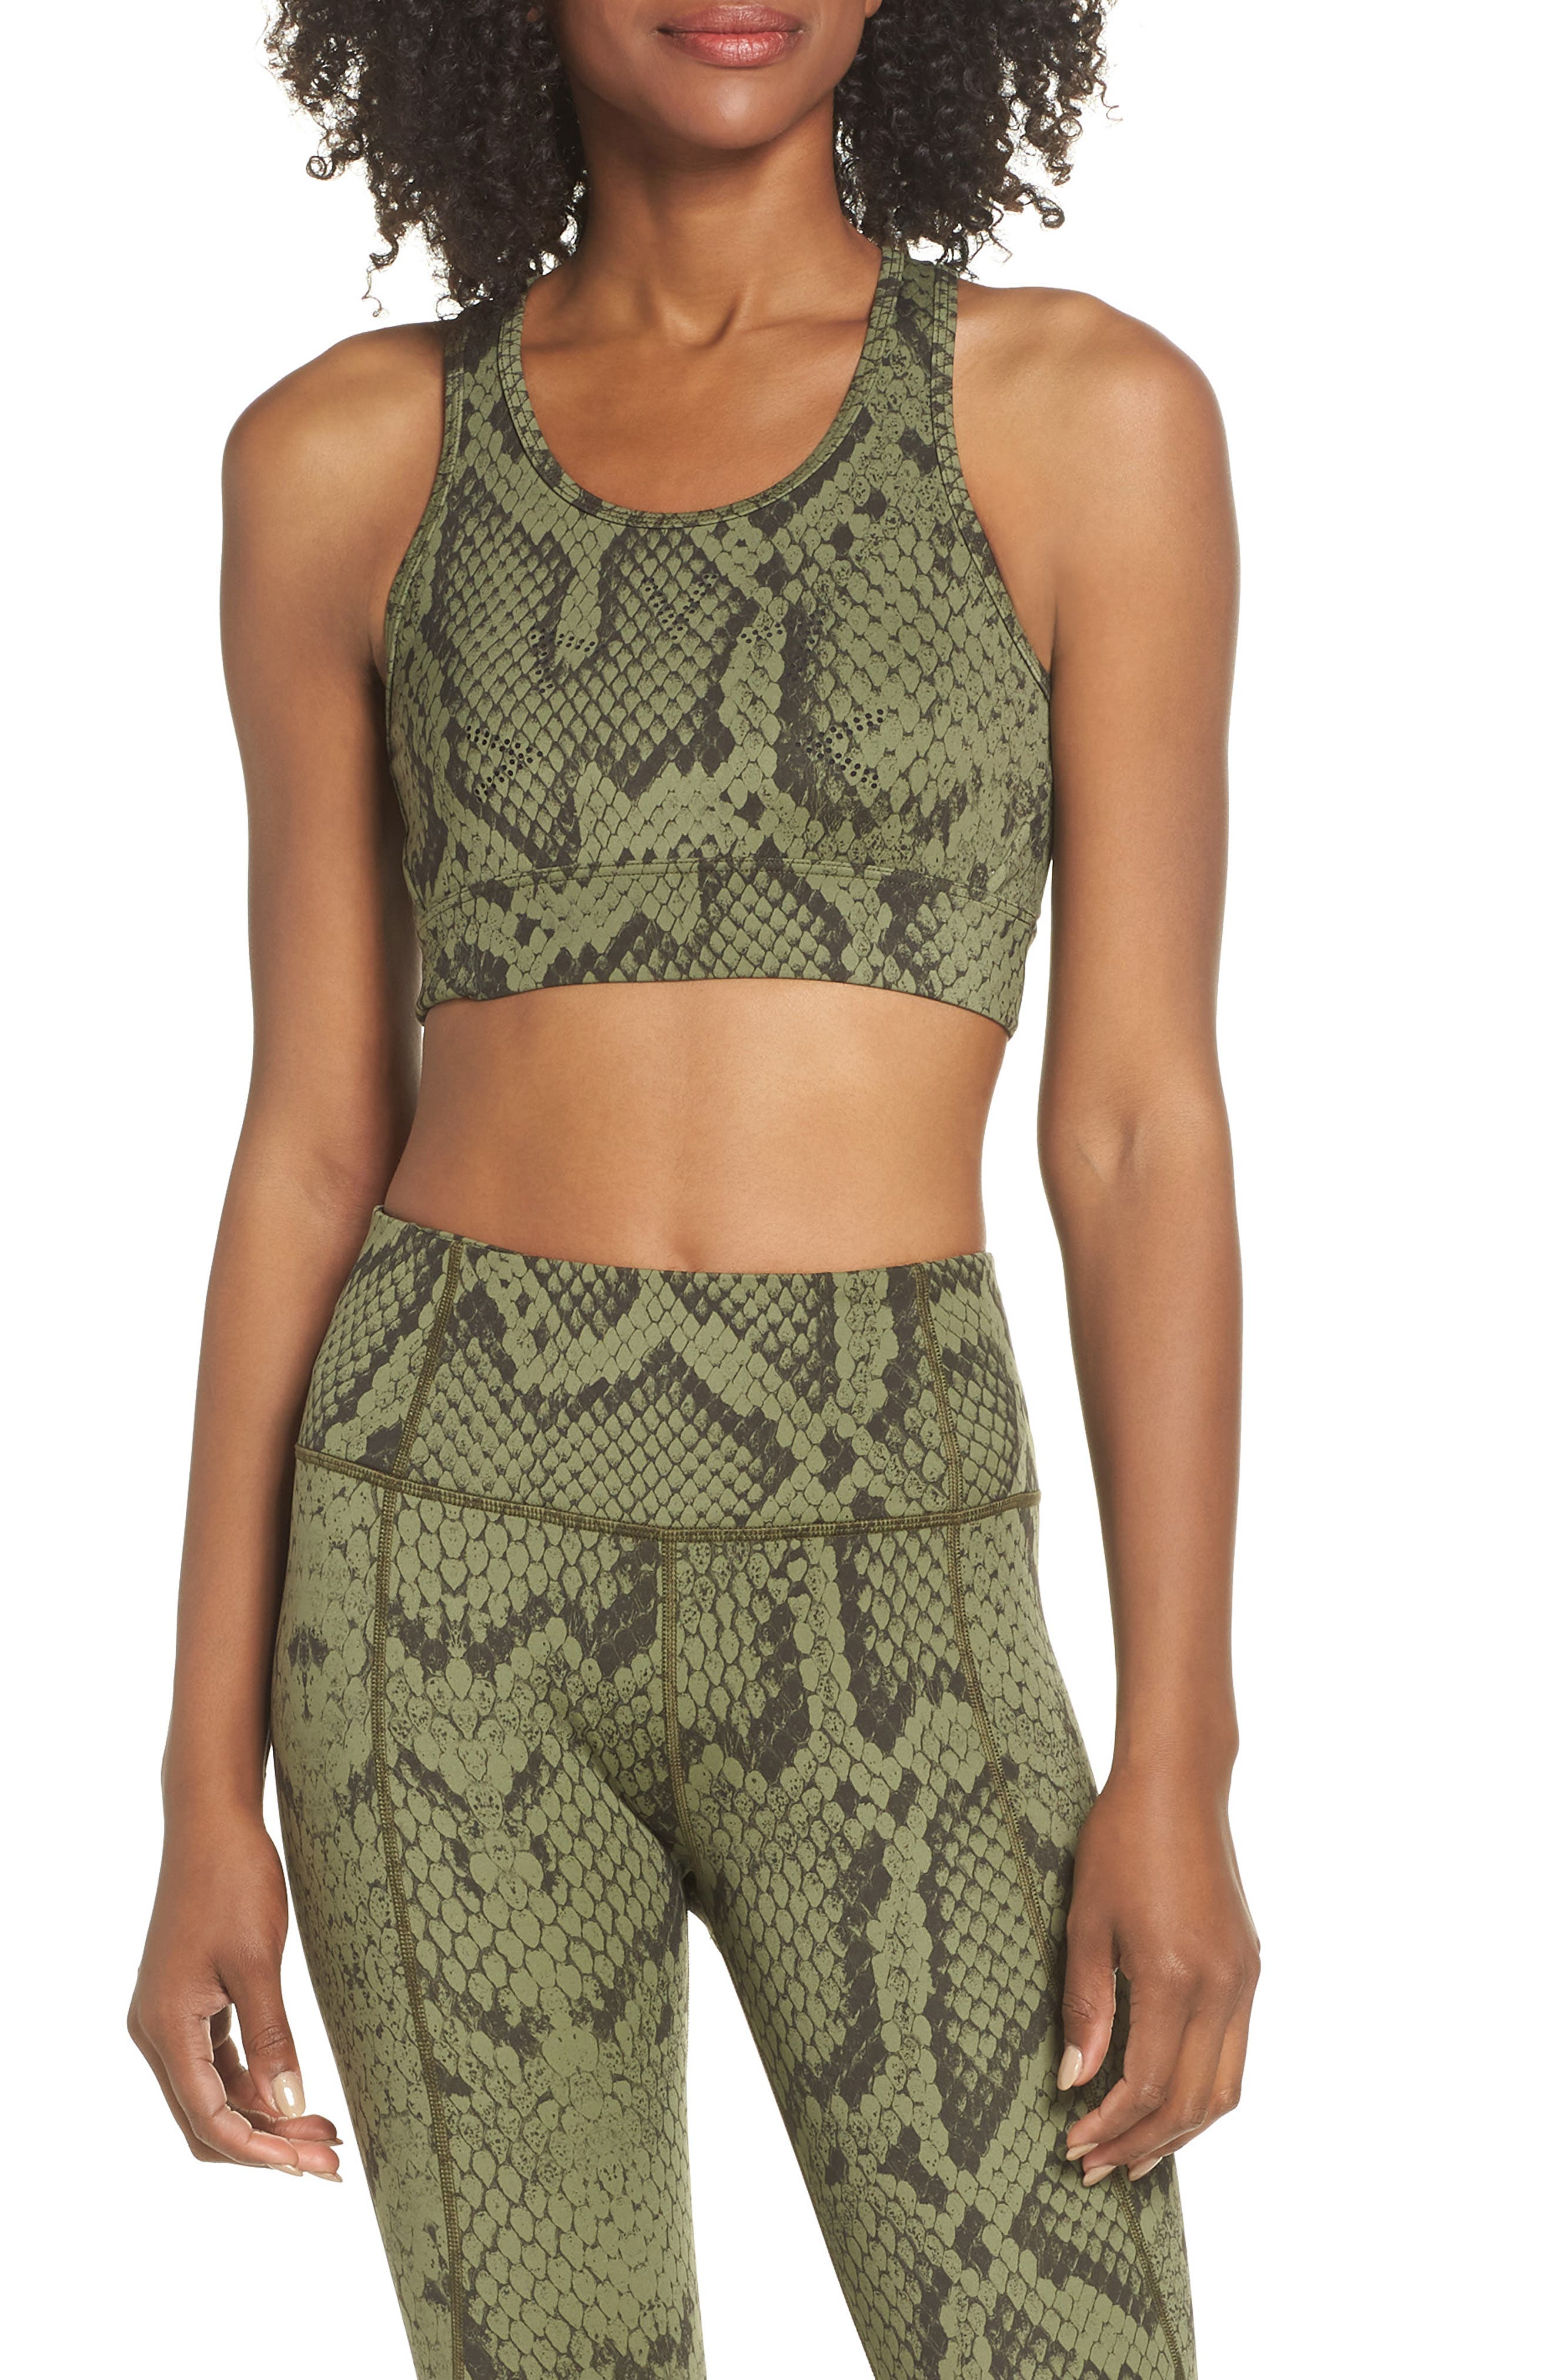 Berkeley Sports Bra,                             Main thumbnail 1, color,                             OLIVE SNAKE